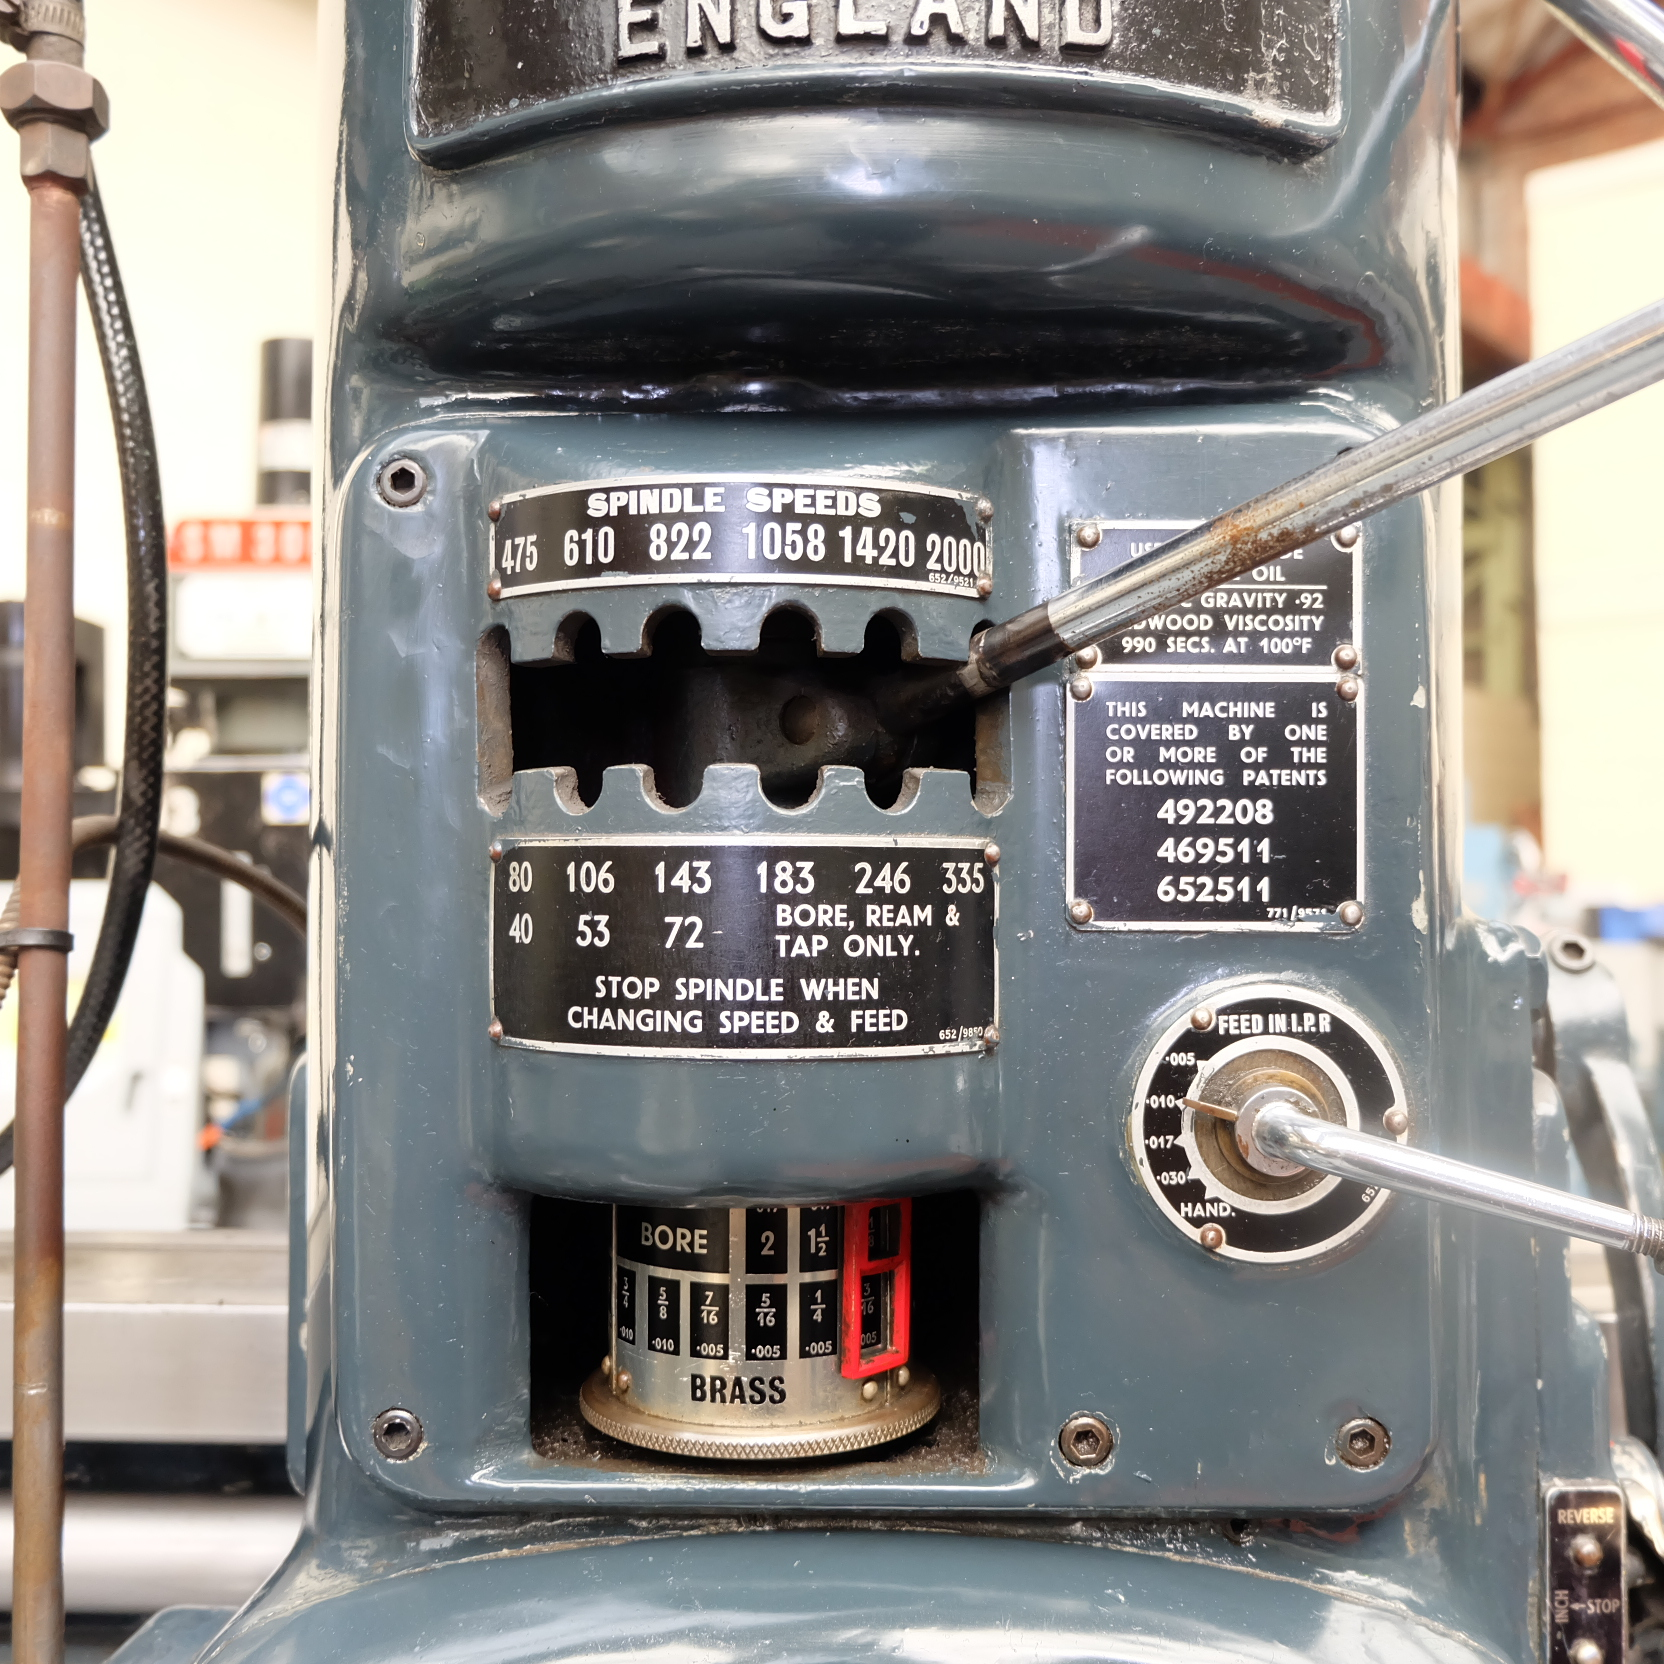 """Archdale: 3'6"""" Radial Arm Drill. Spindle Speeds 40-2000rpm. - Image 4 of 8"""